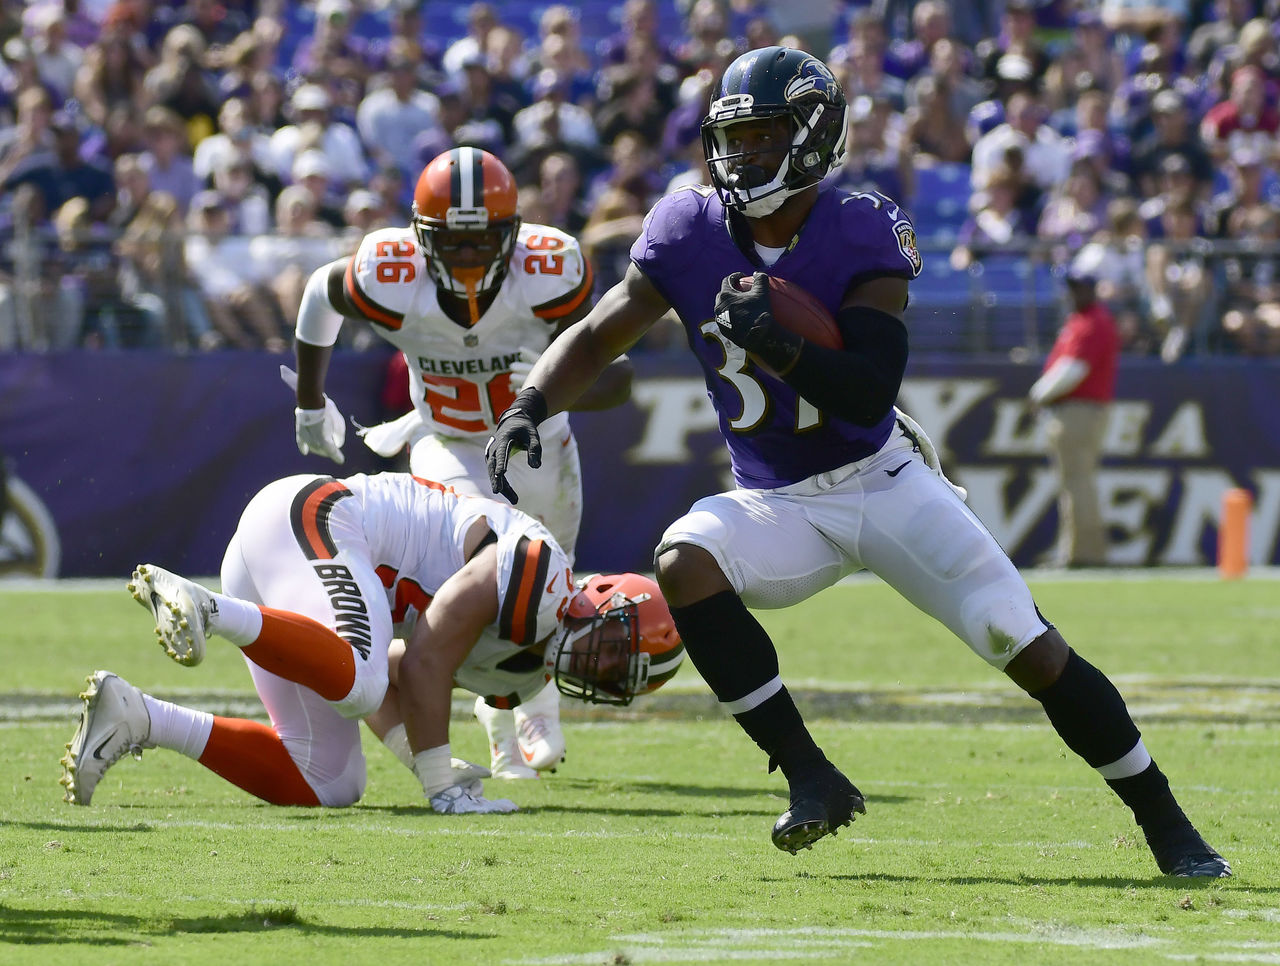 Cropped_2017-09-17t184952z_269017307_nocid_rtrmadp_3_nfl-cleveland-browns-at-baltimore-ravens